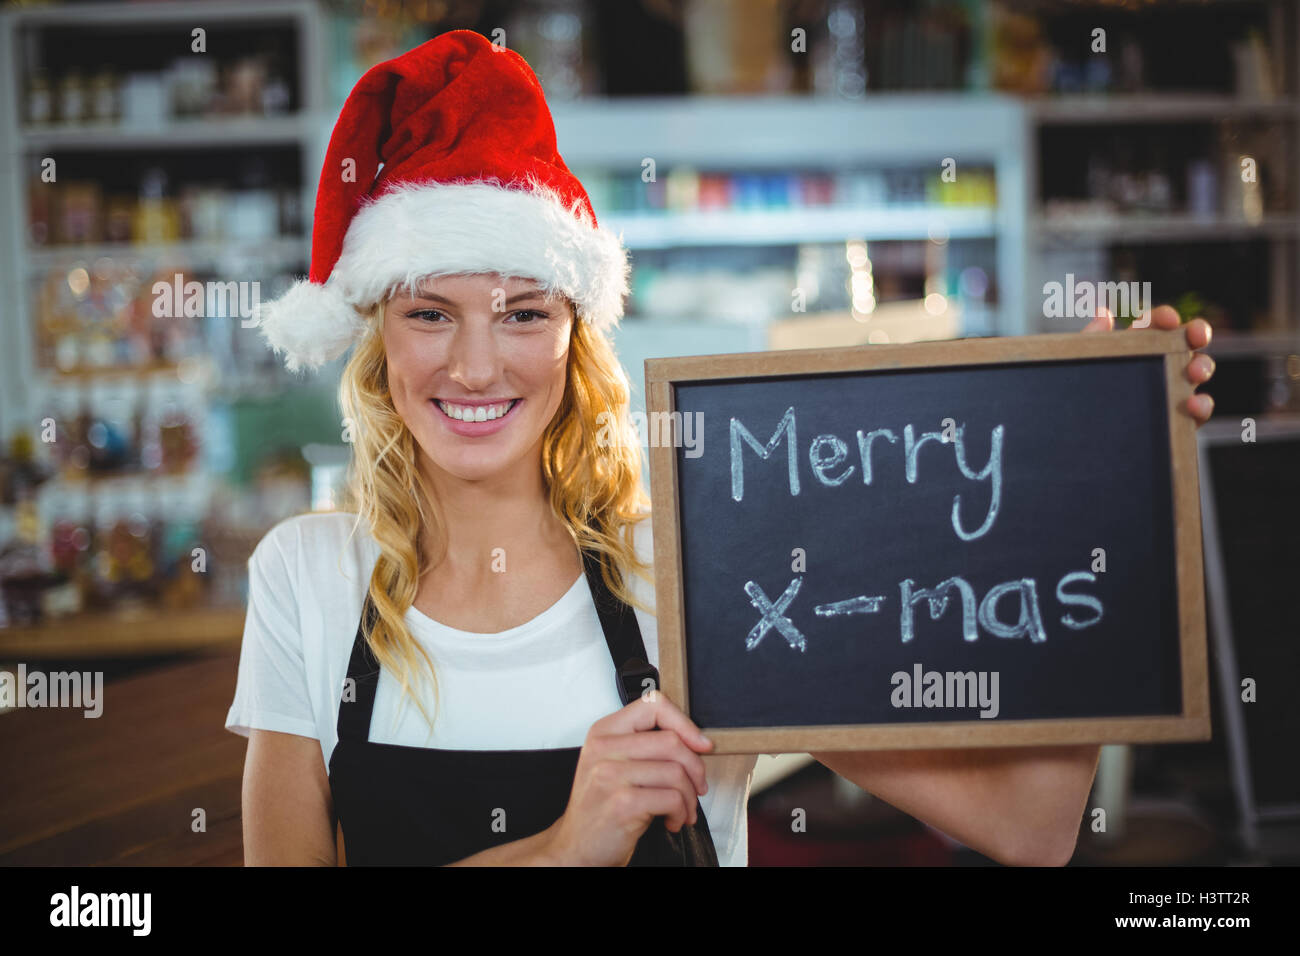 Portrait of waitress showing chalkboard with merry x-mas sign - Stock Image